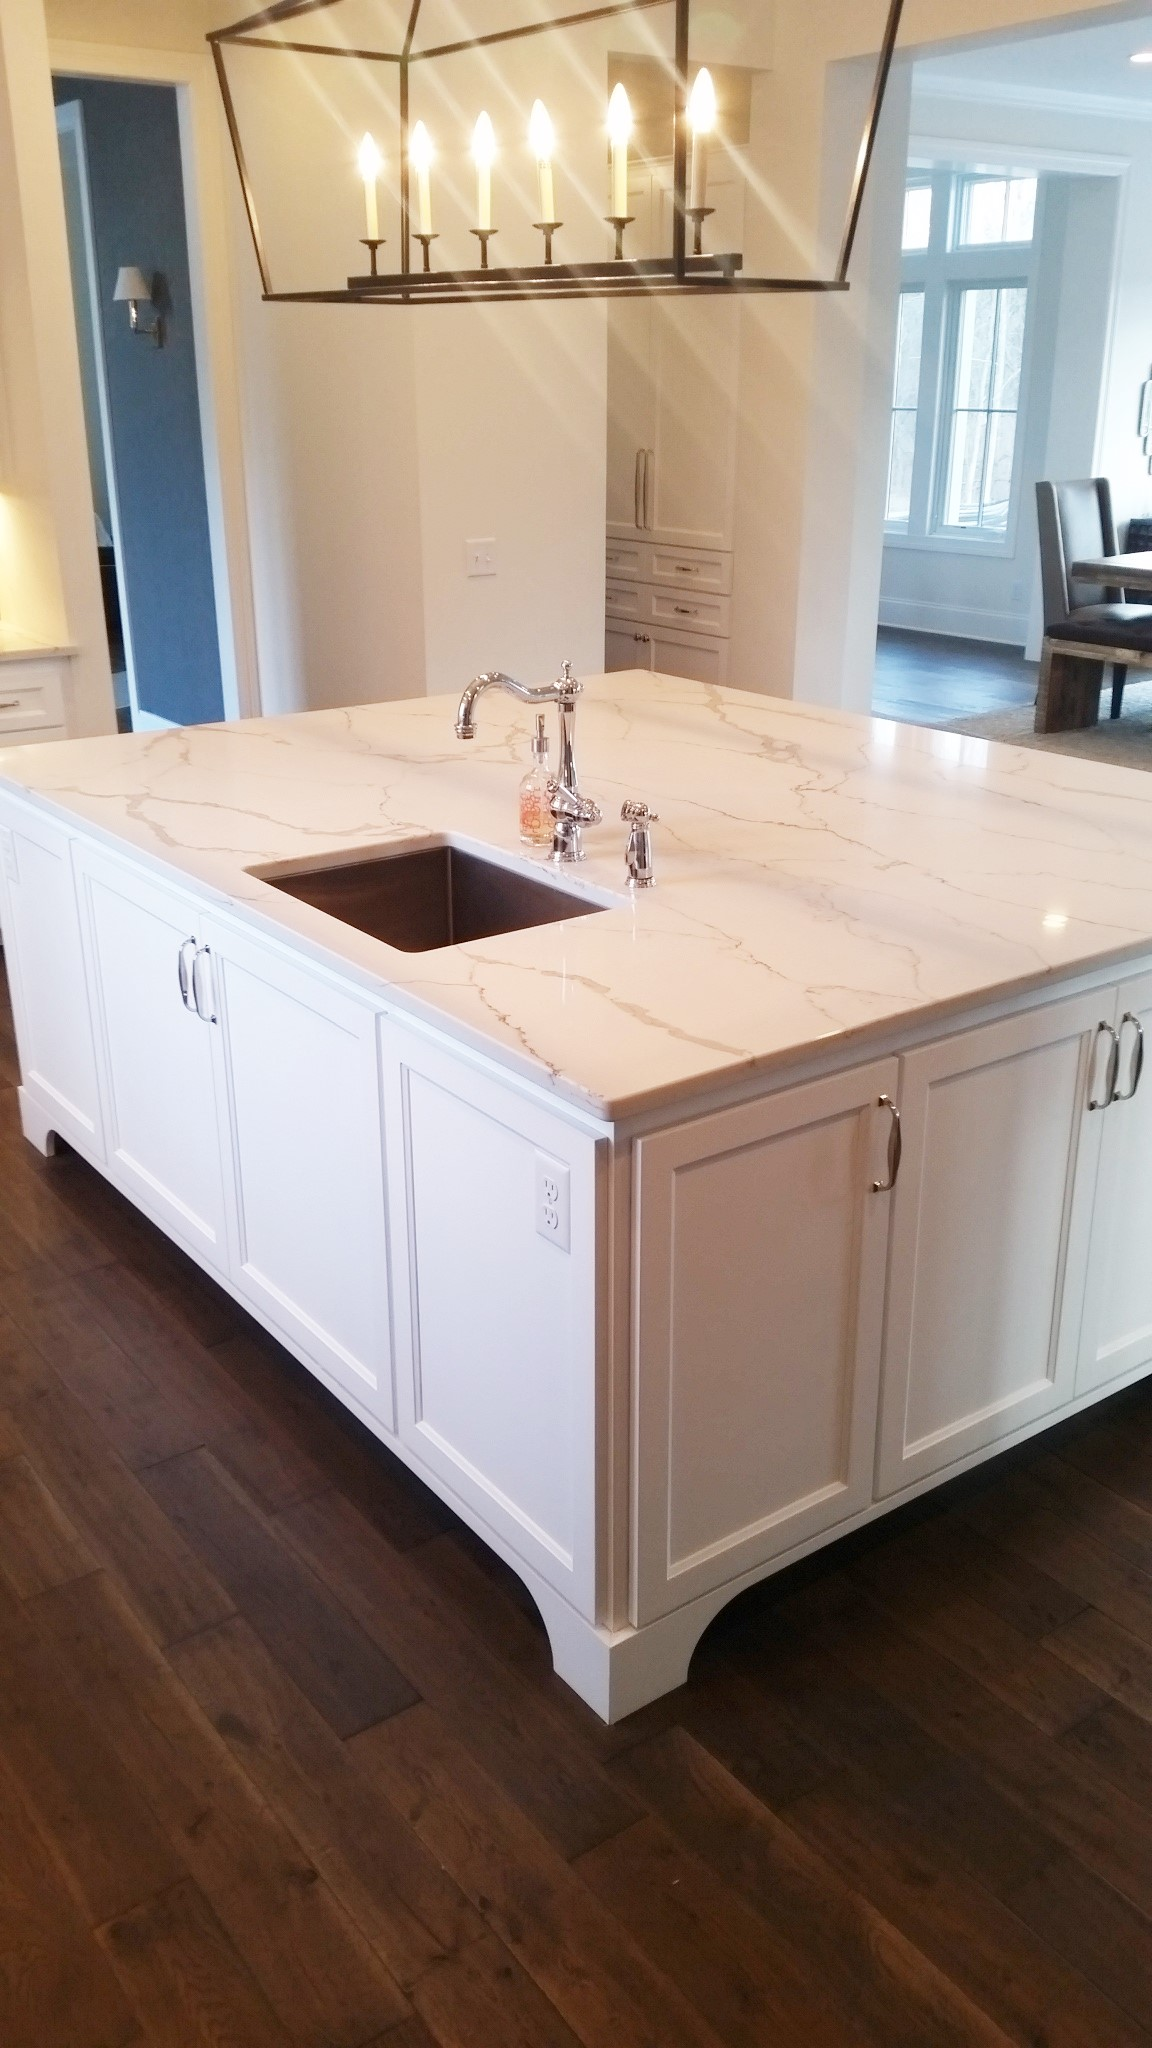 Quality custom cabinets furniture and woodwork - Quality Custom Cabinets Furniture And Woodwork 27